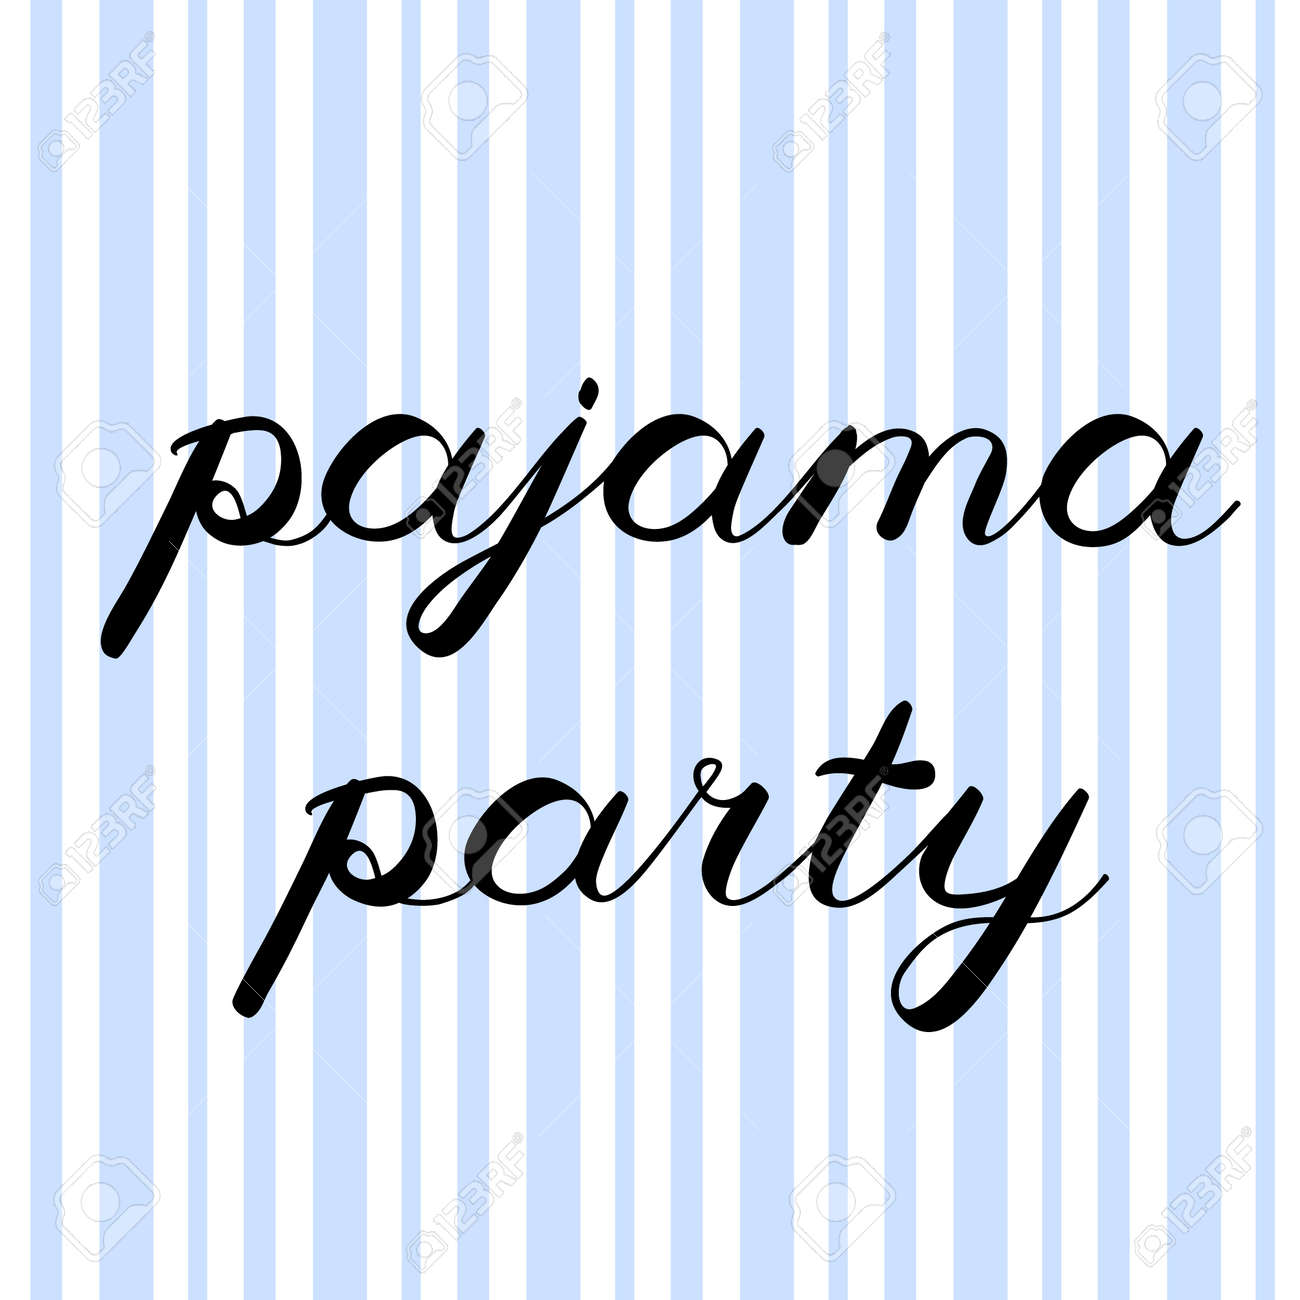 Pajama party brush lettering nice handwriting on striped background nice handwriting on striped background can be used for invitation stopboris Gallery